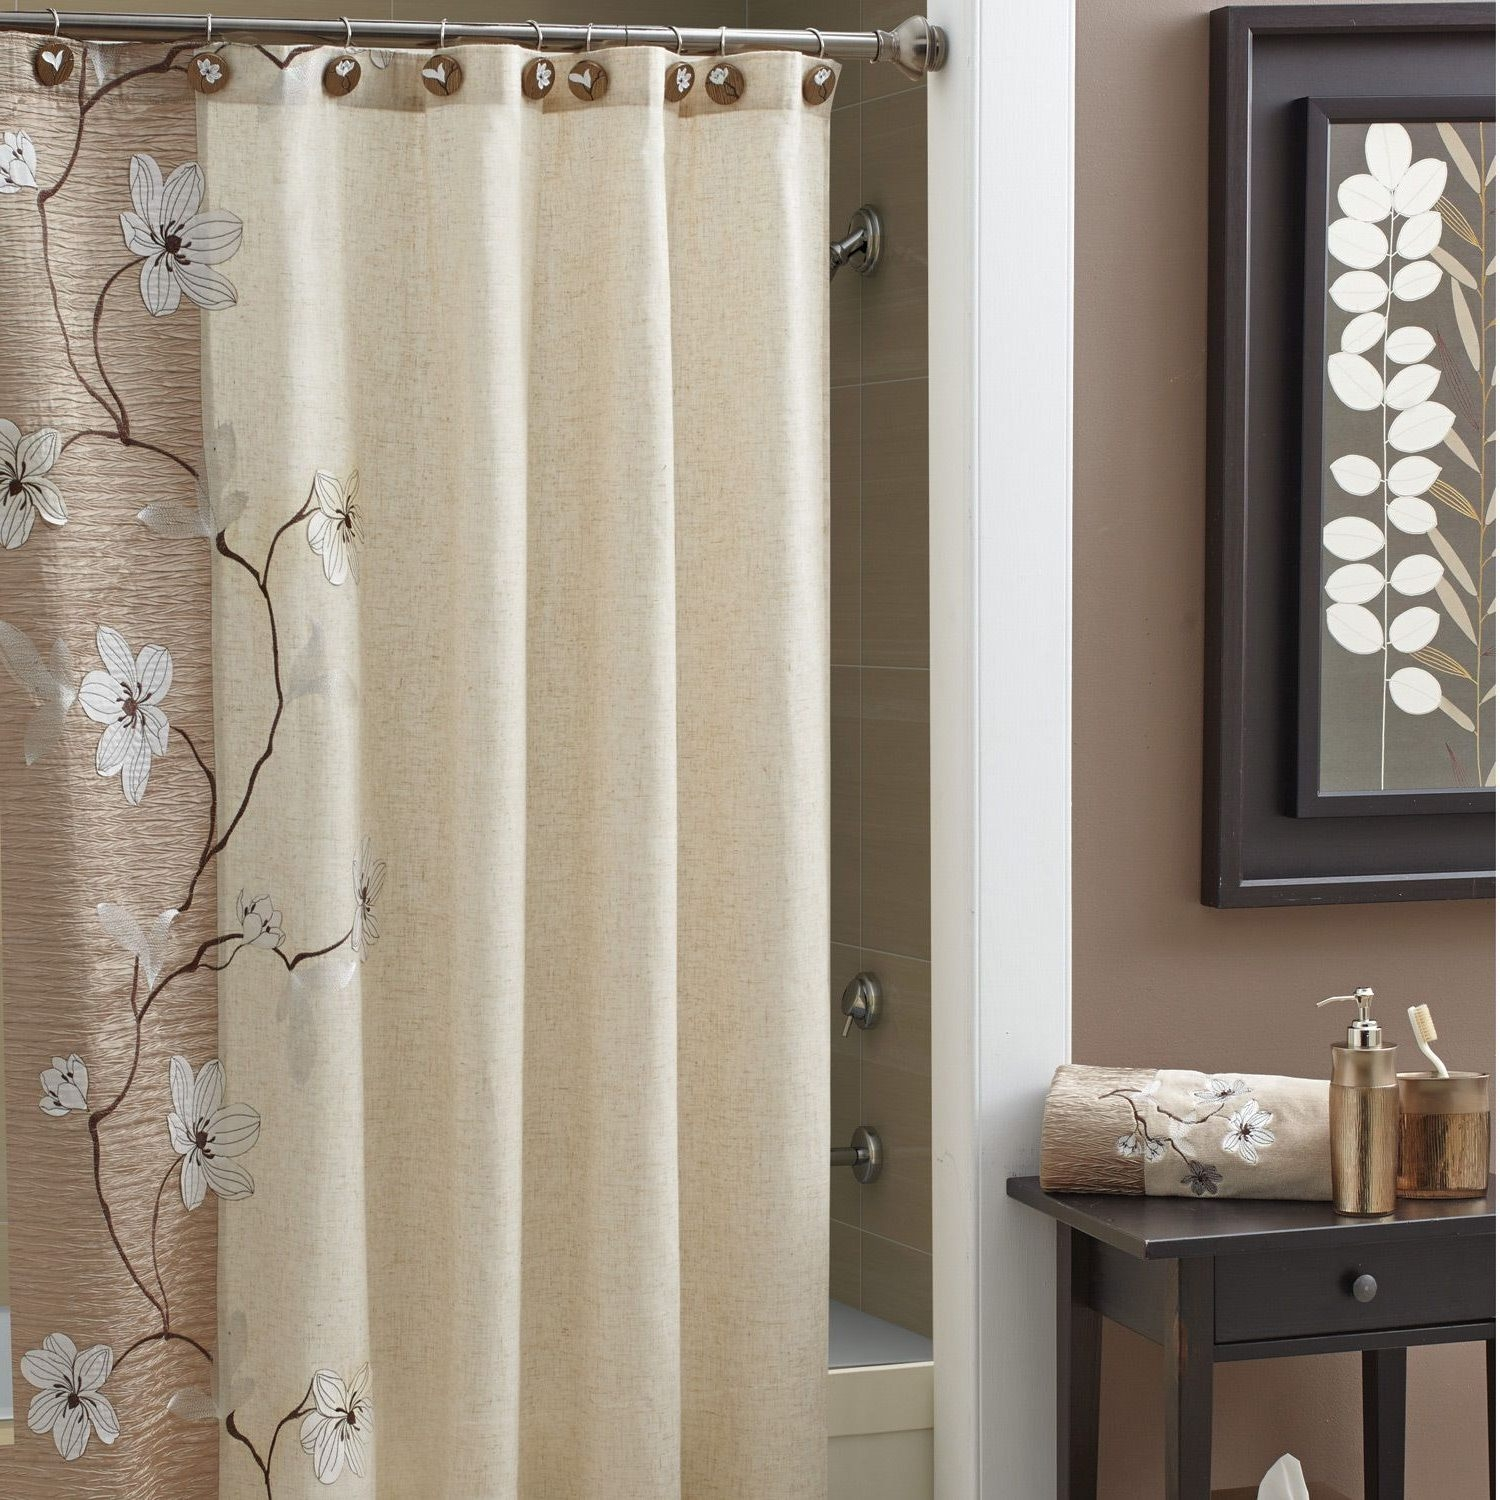 Curtain How To Install Target Shower Curtain Rod For Your Throughout Nautical Curtain Rods (View 11 of 25)